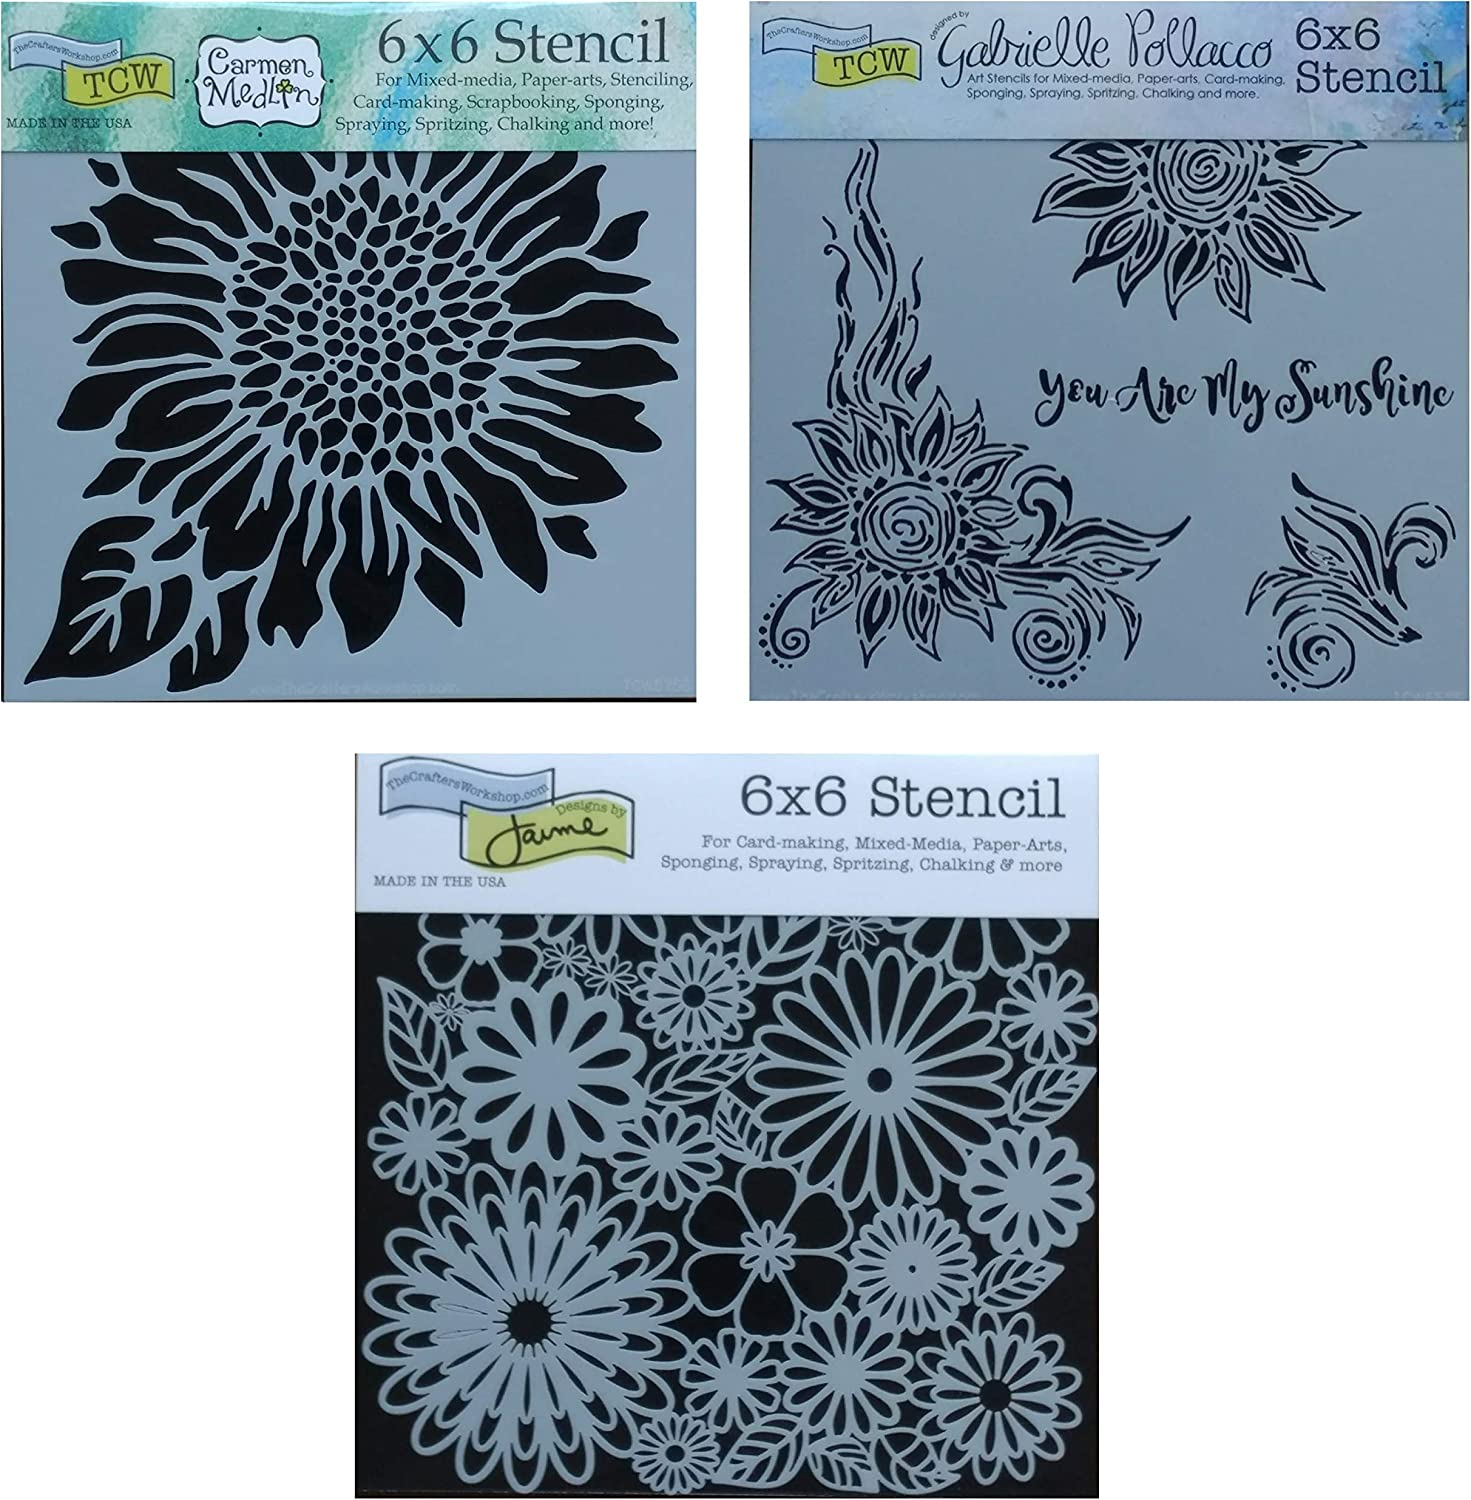 3 Crafters Workshop Mixed Media Stencils Set| Sunflower Stencil for Arts, Card Making, Journaling, Scrapbooking | 6 Inch x 6 Inch Templates | Small and Large Sunflowers